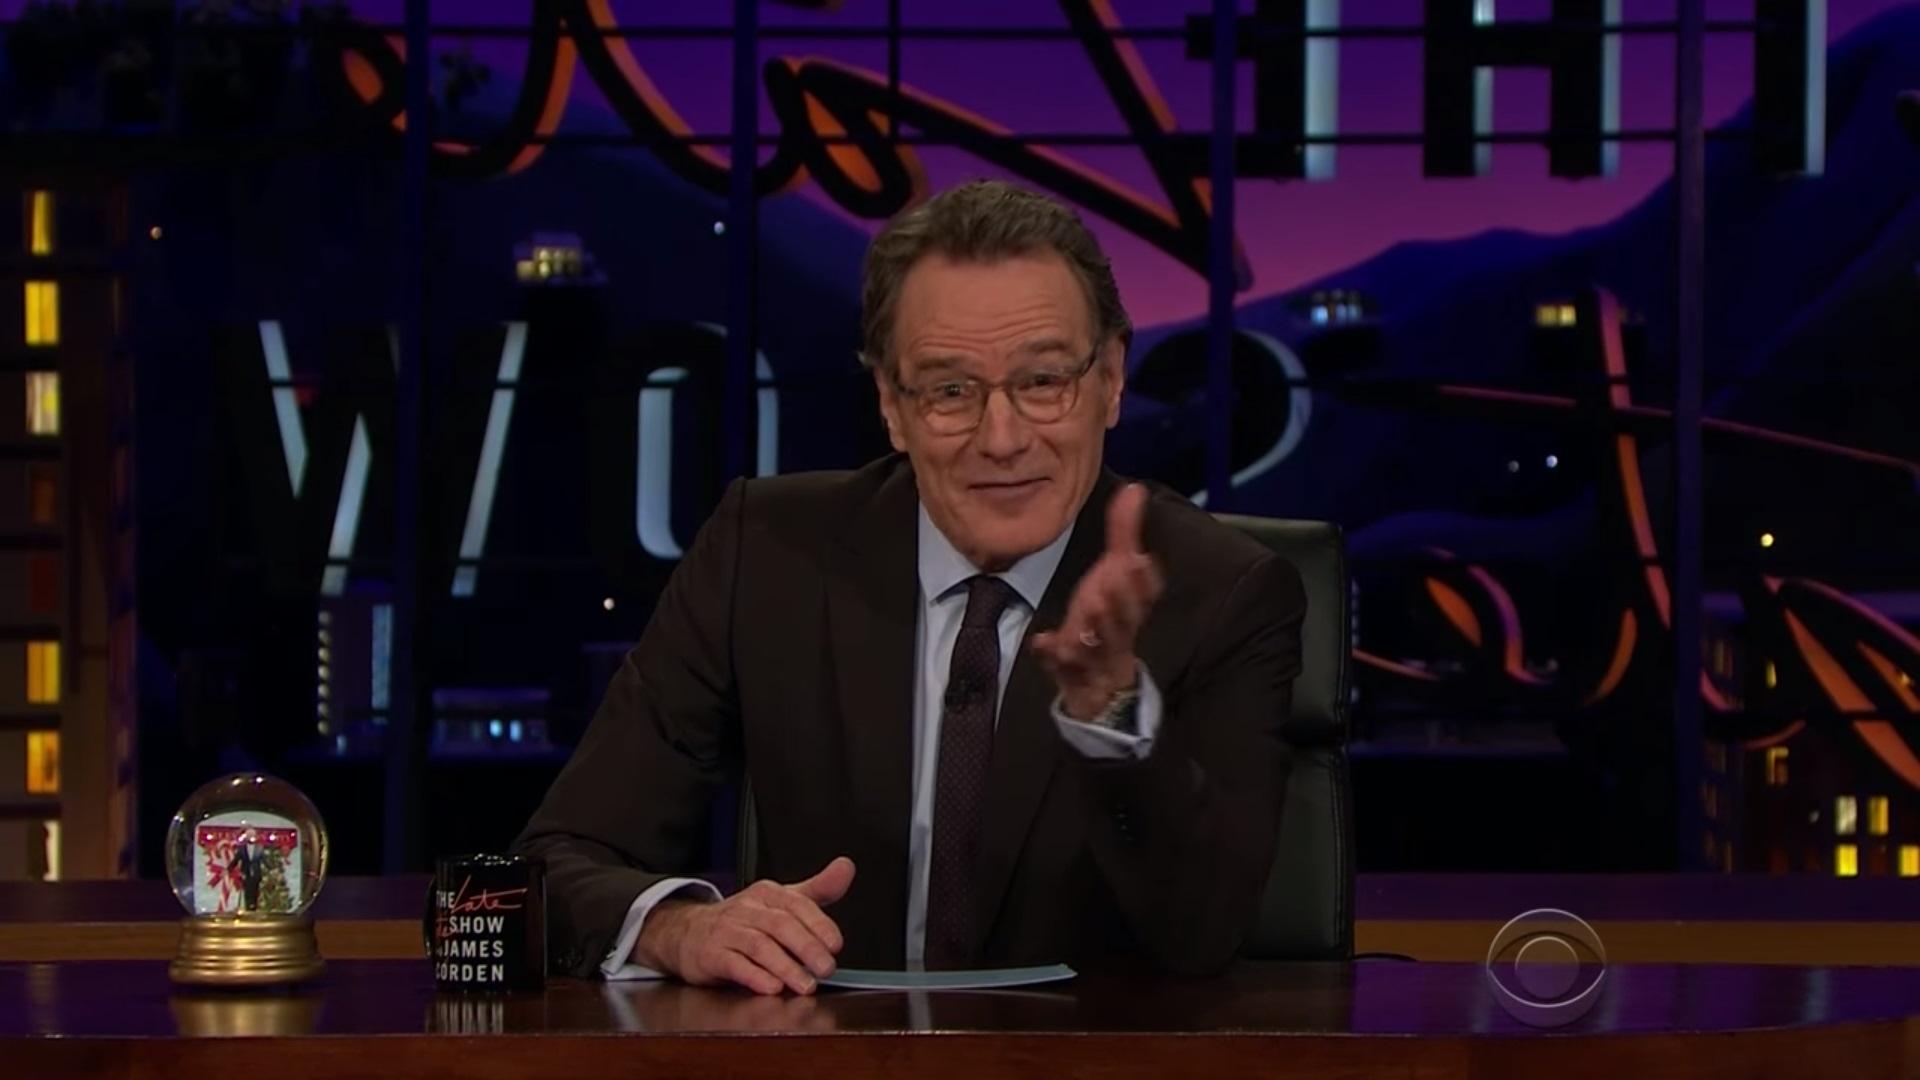 watch-bryan-cranston-describe-the-side-effects-of-filling-in-for-james-corden-on-the-late-late-show-social.jpg